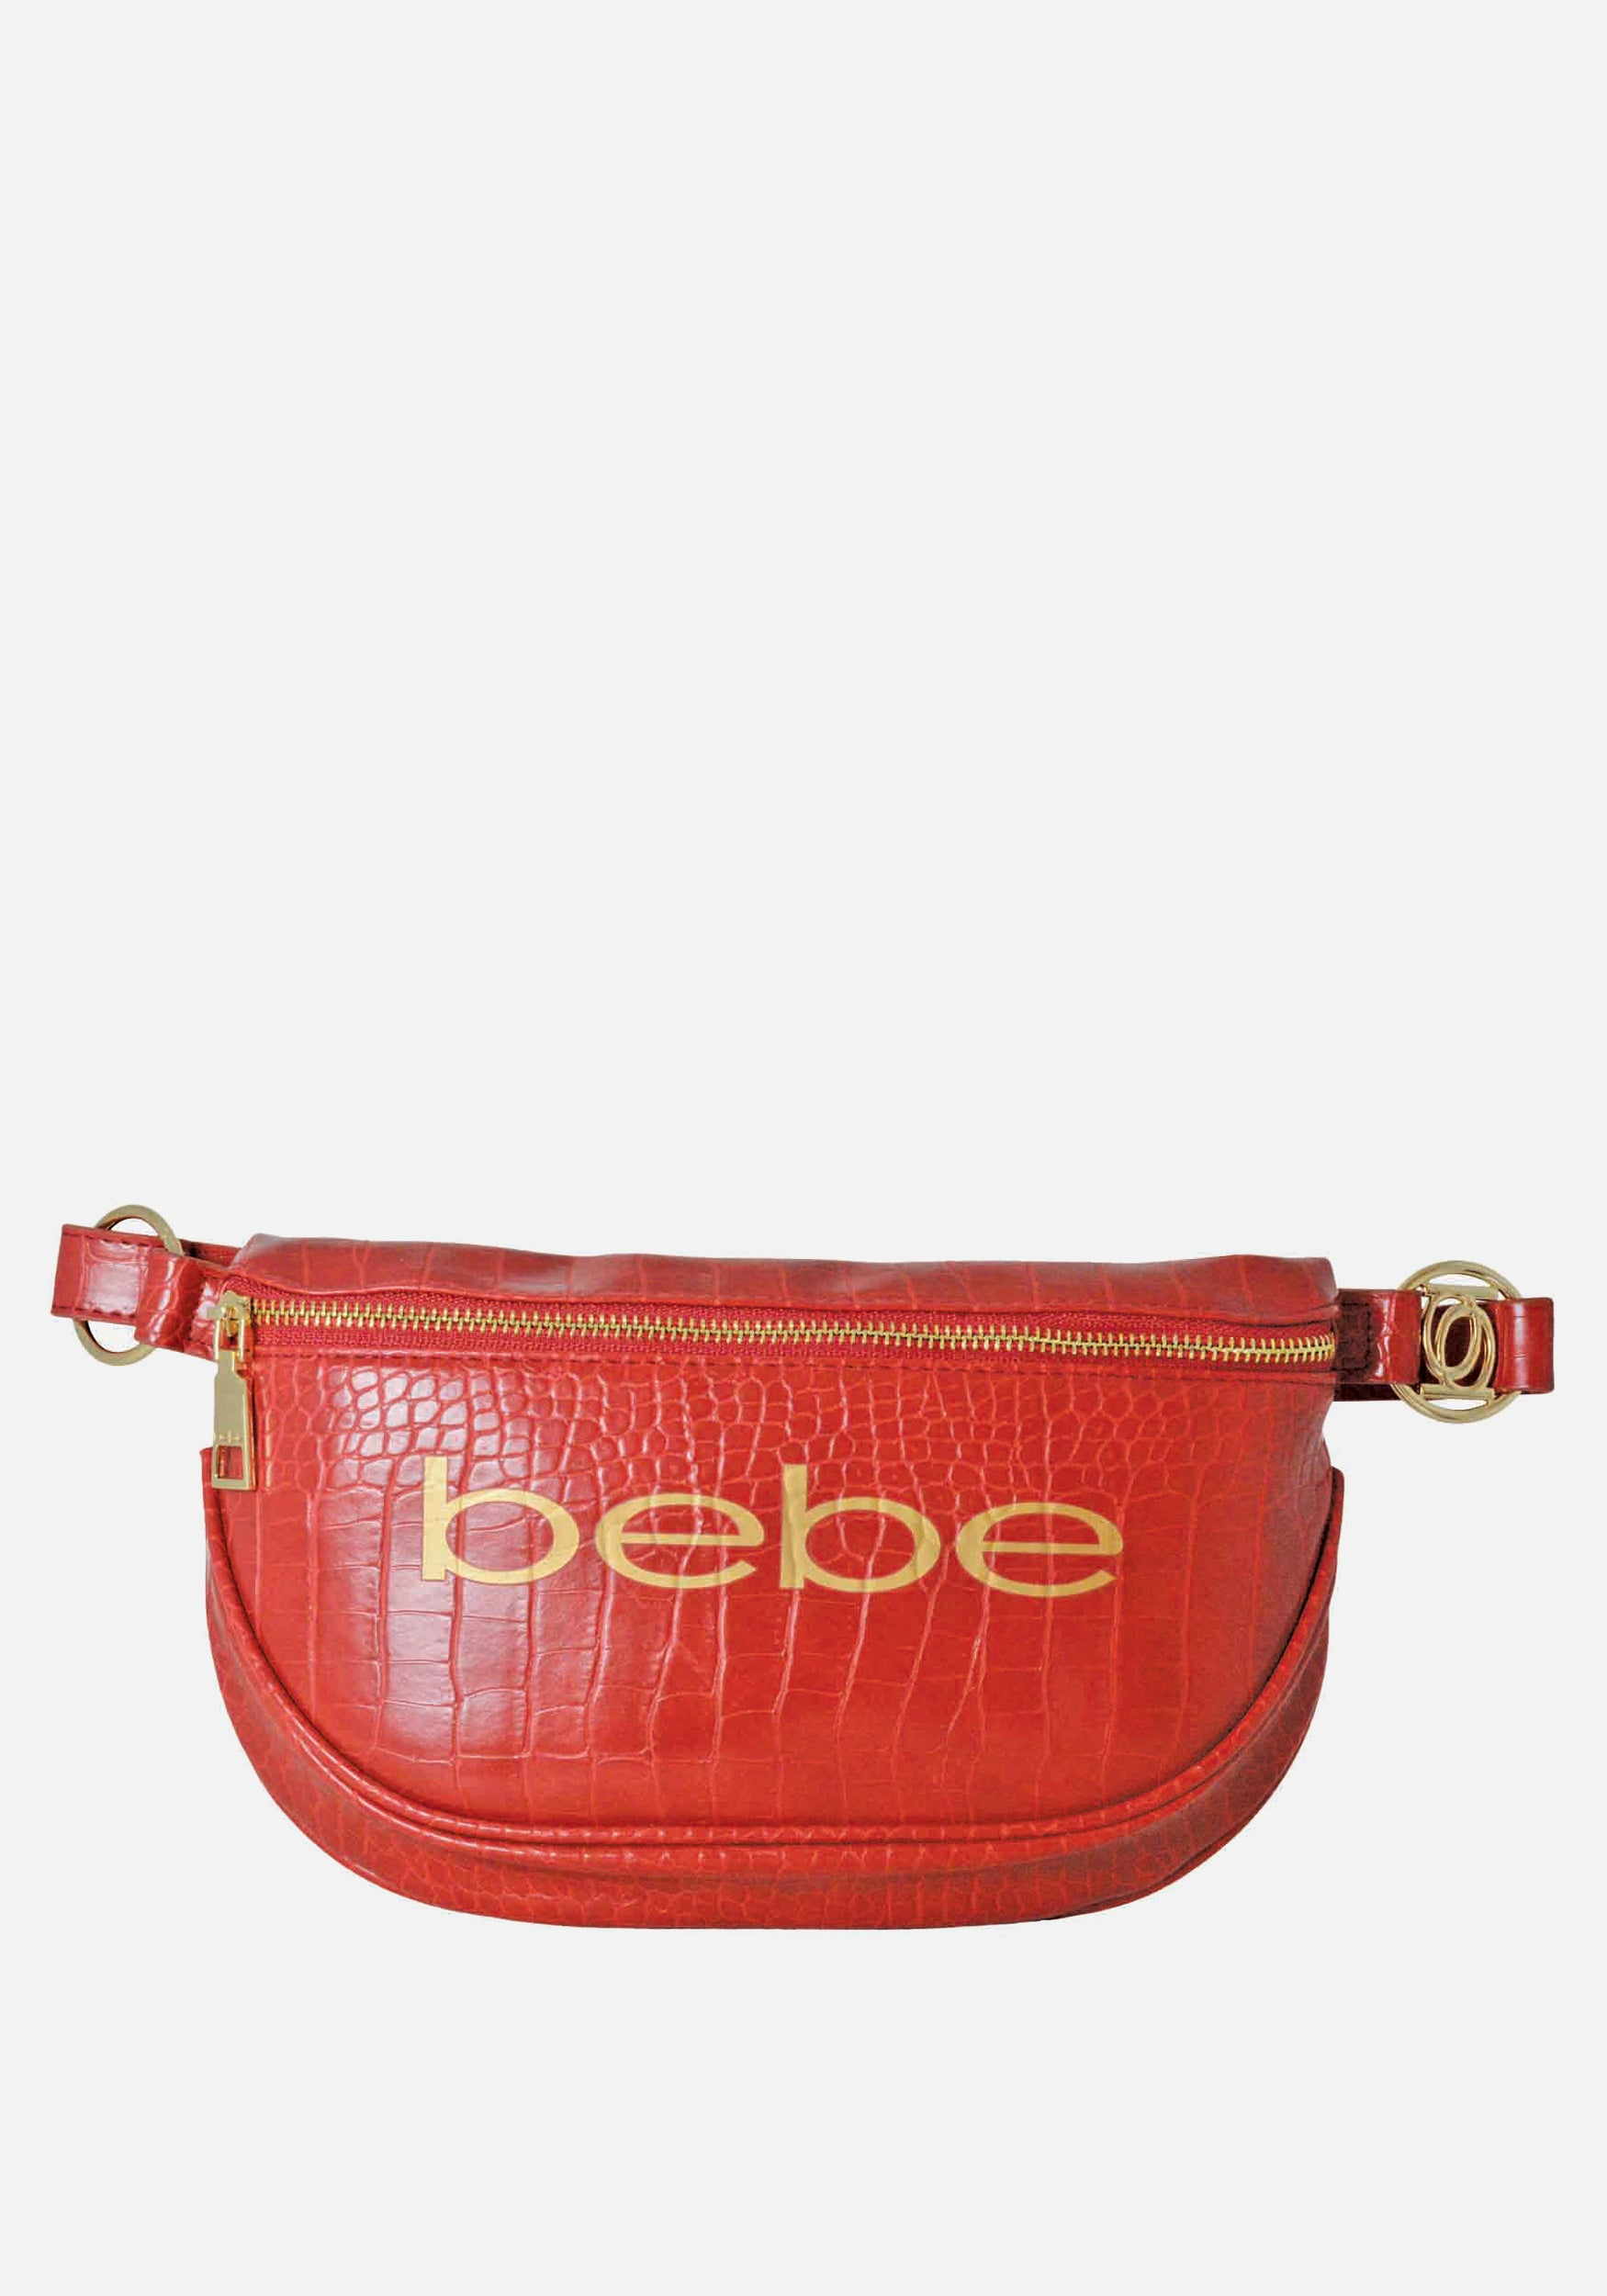 Bebe Women's Josephine Croco Convertible Sling in Candy Apple Polyester